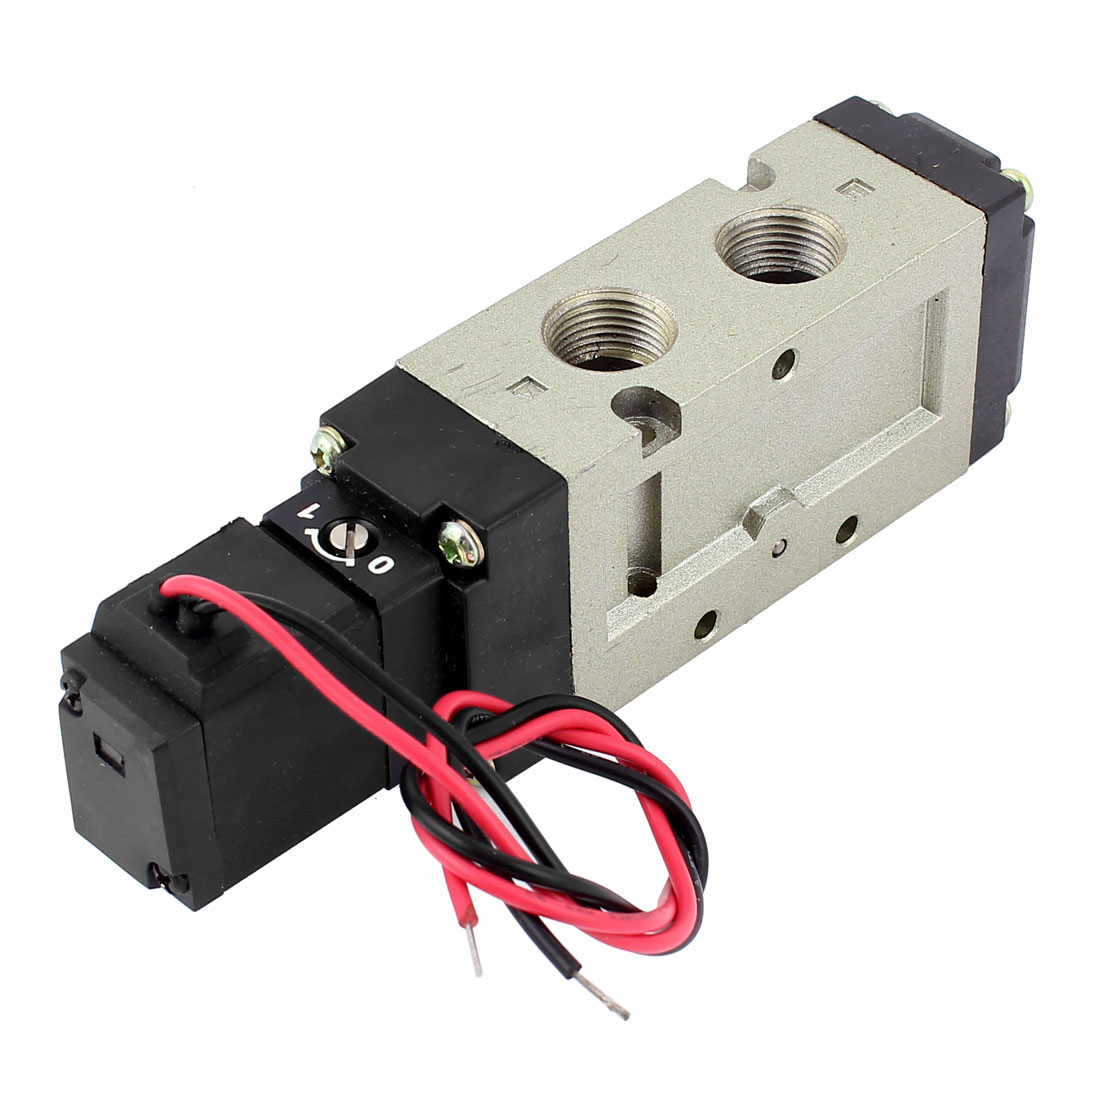 VF-5120 DC 21-26V 1.5-7kg/cm2 5 Way 2 Position 3/8BSP Thread Air Gas Pneumatic Solenoid Valve